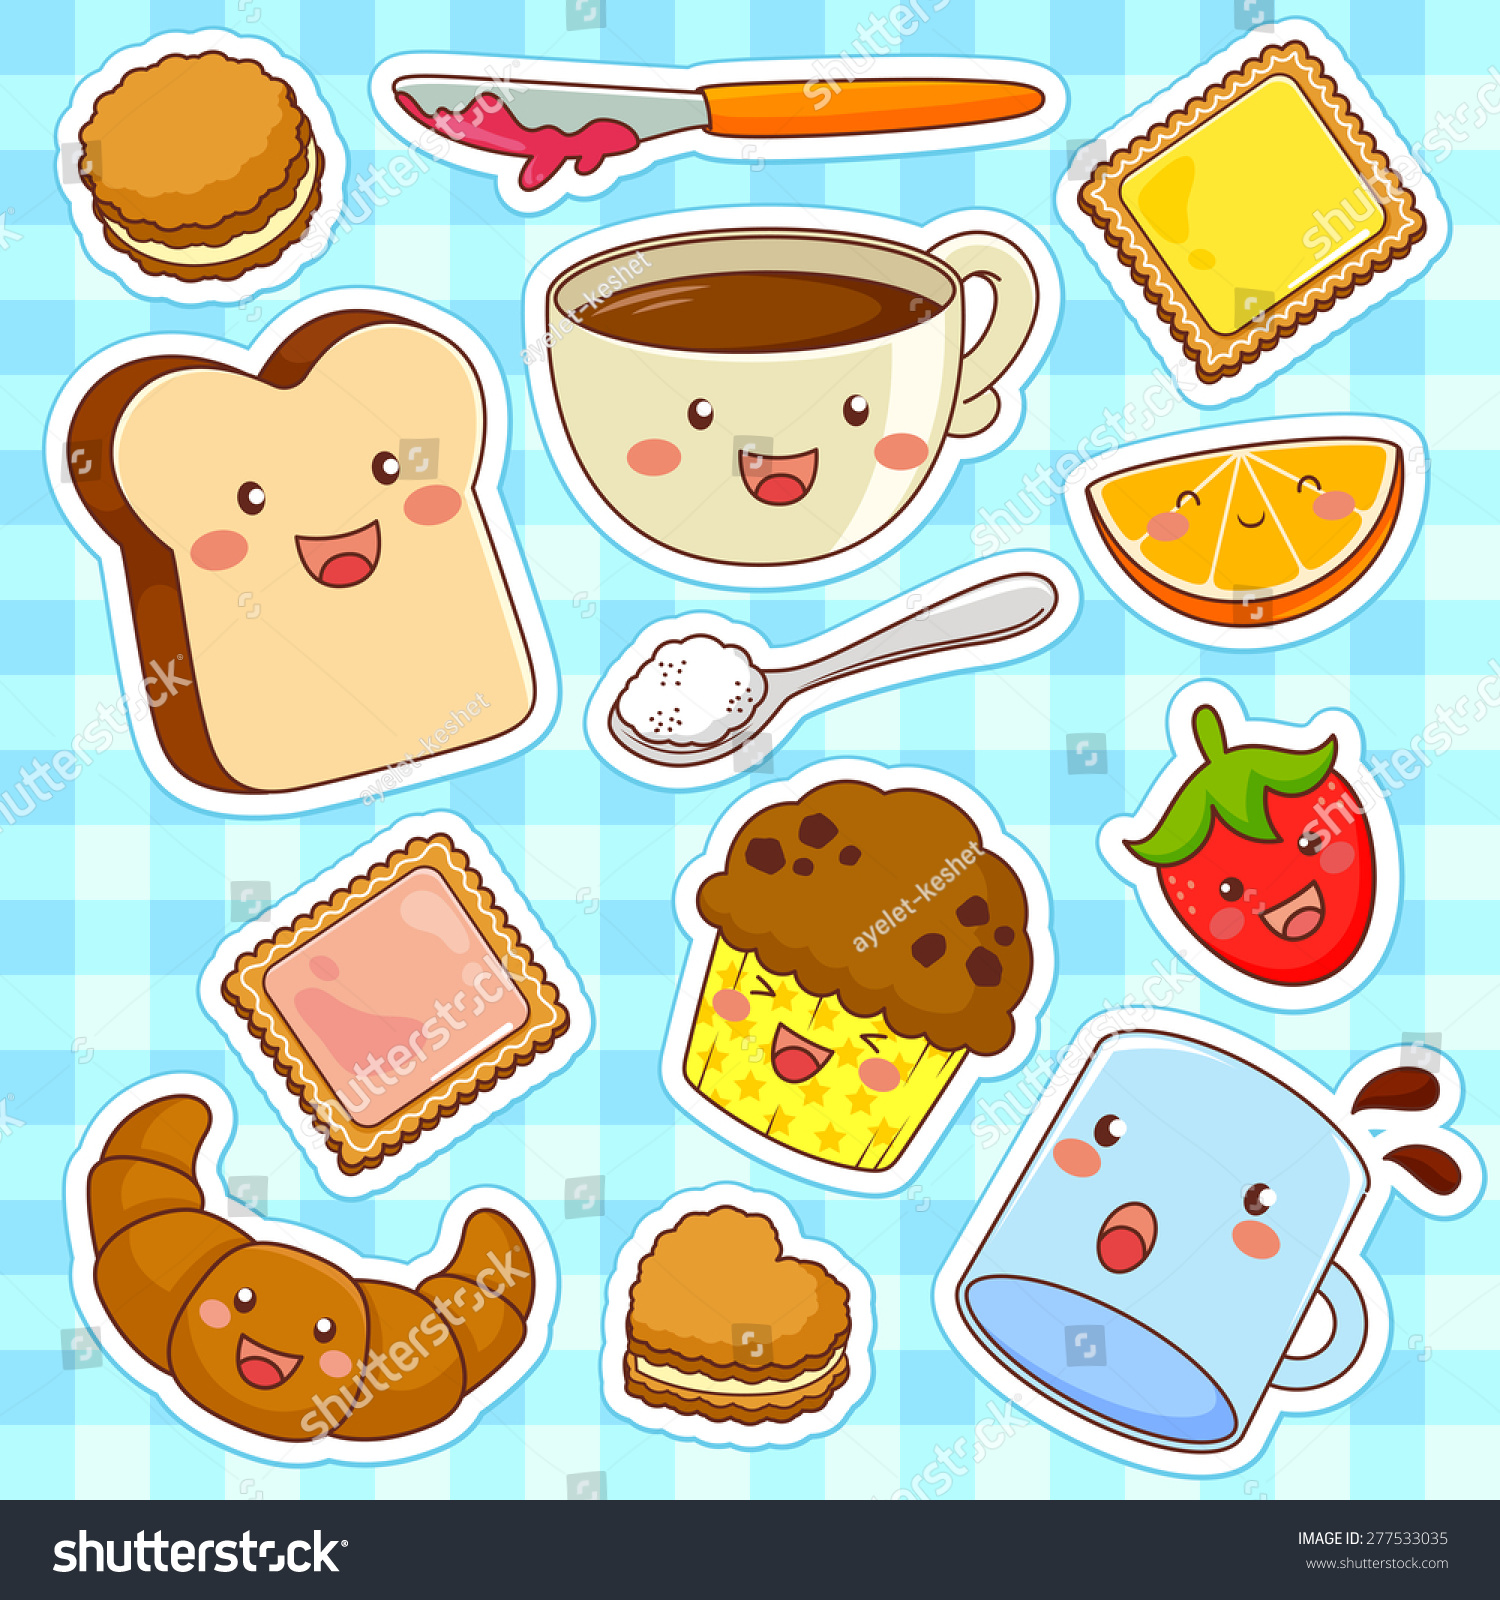 Cute kawaii style cartoon foods stock illustration 277533035 shutterstock - Stylish cooking ...